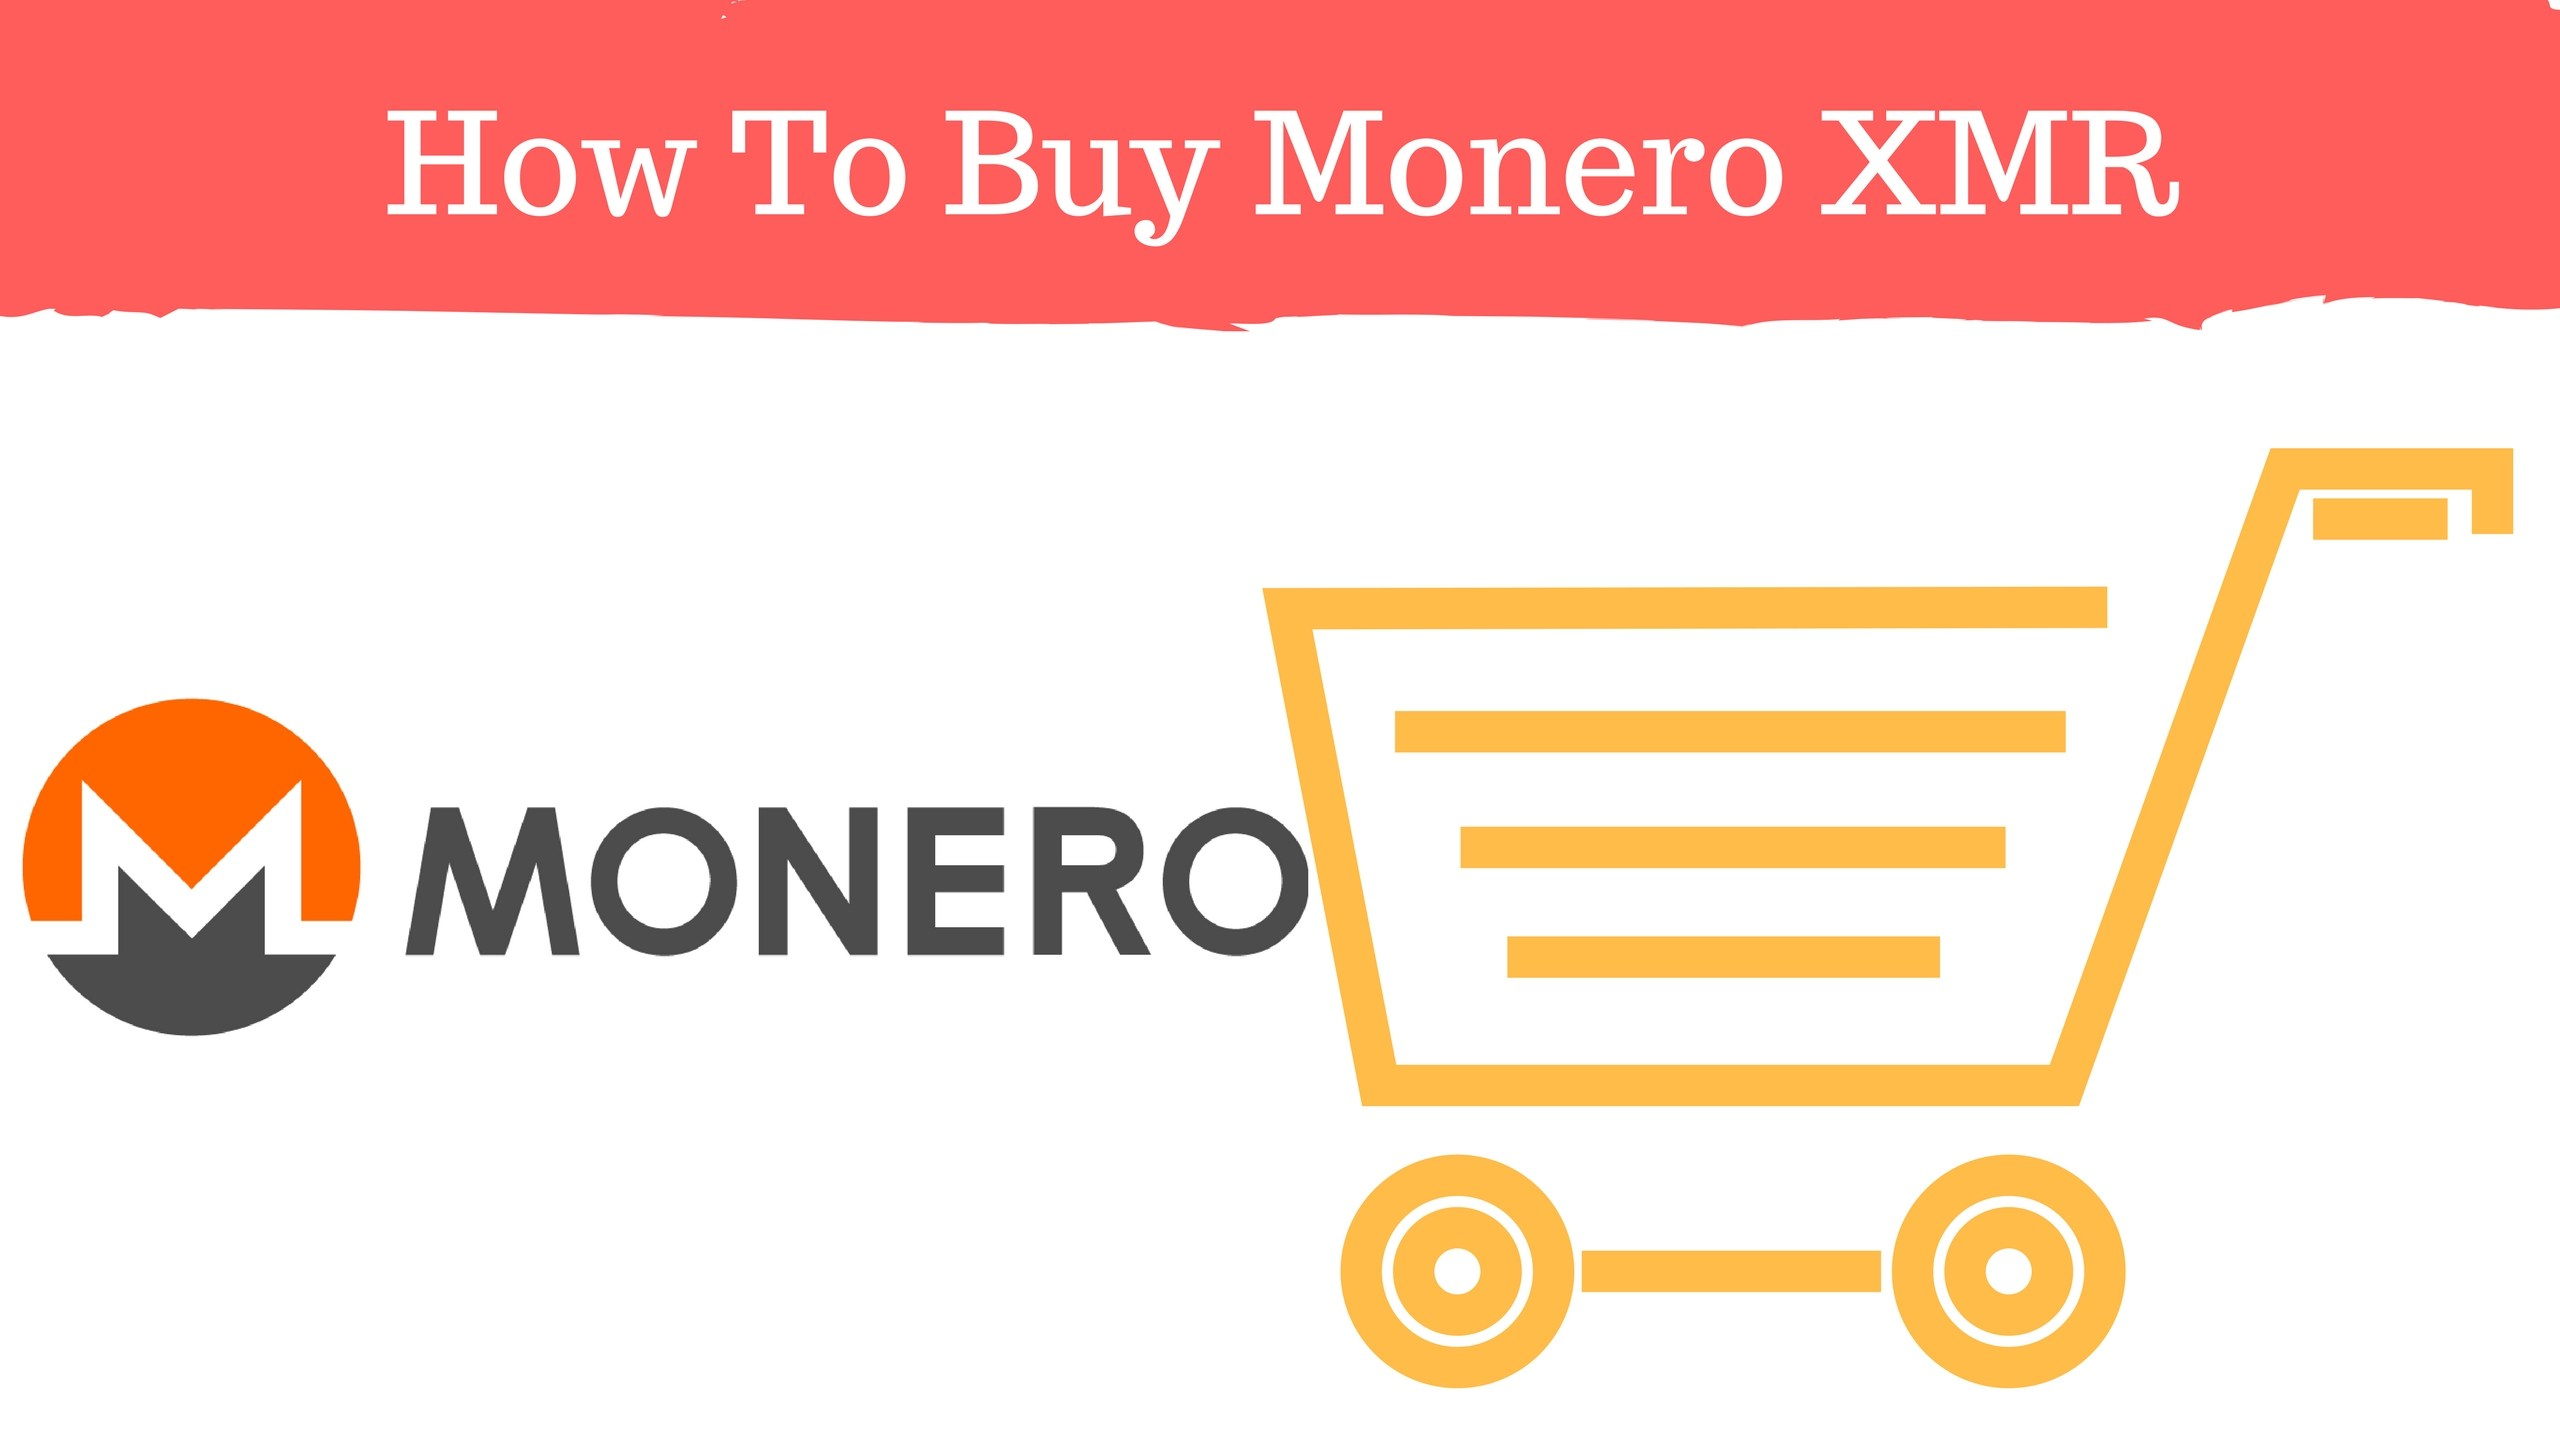 Top 3 Places to Buy Monero (XMR)